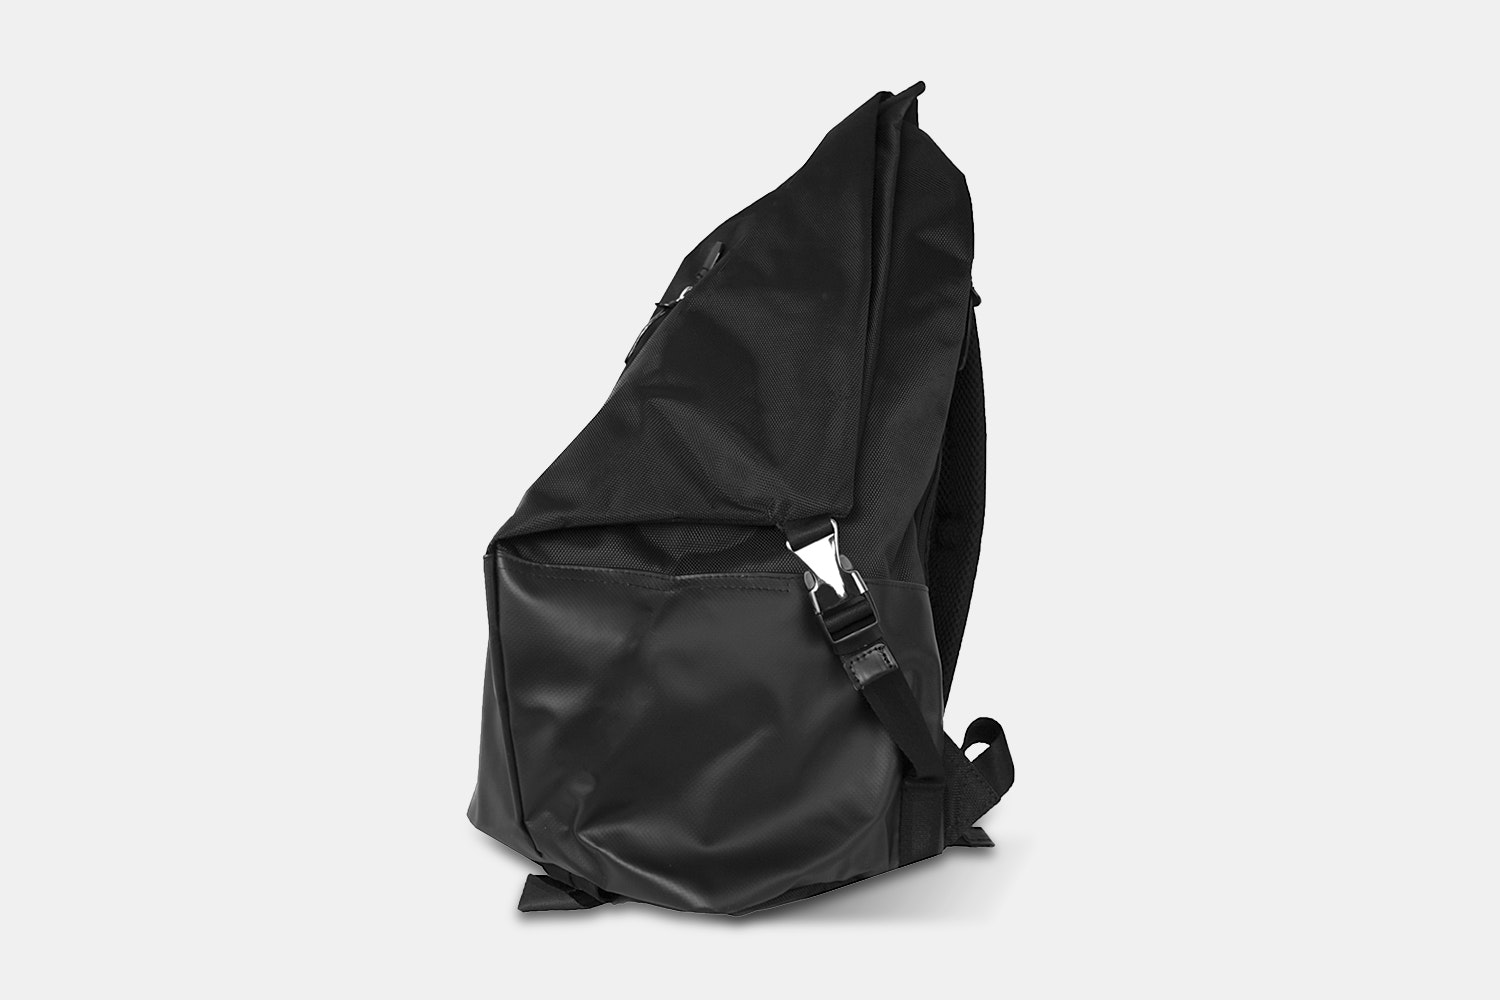 Harvest Label Tourer Ballistic Backpack